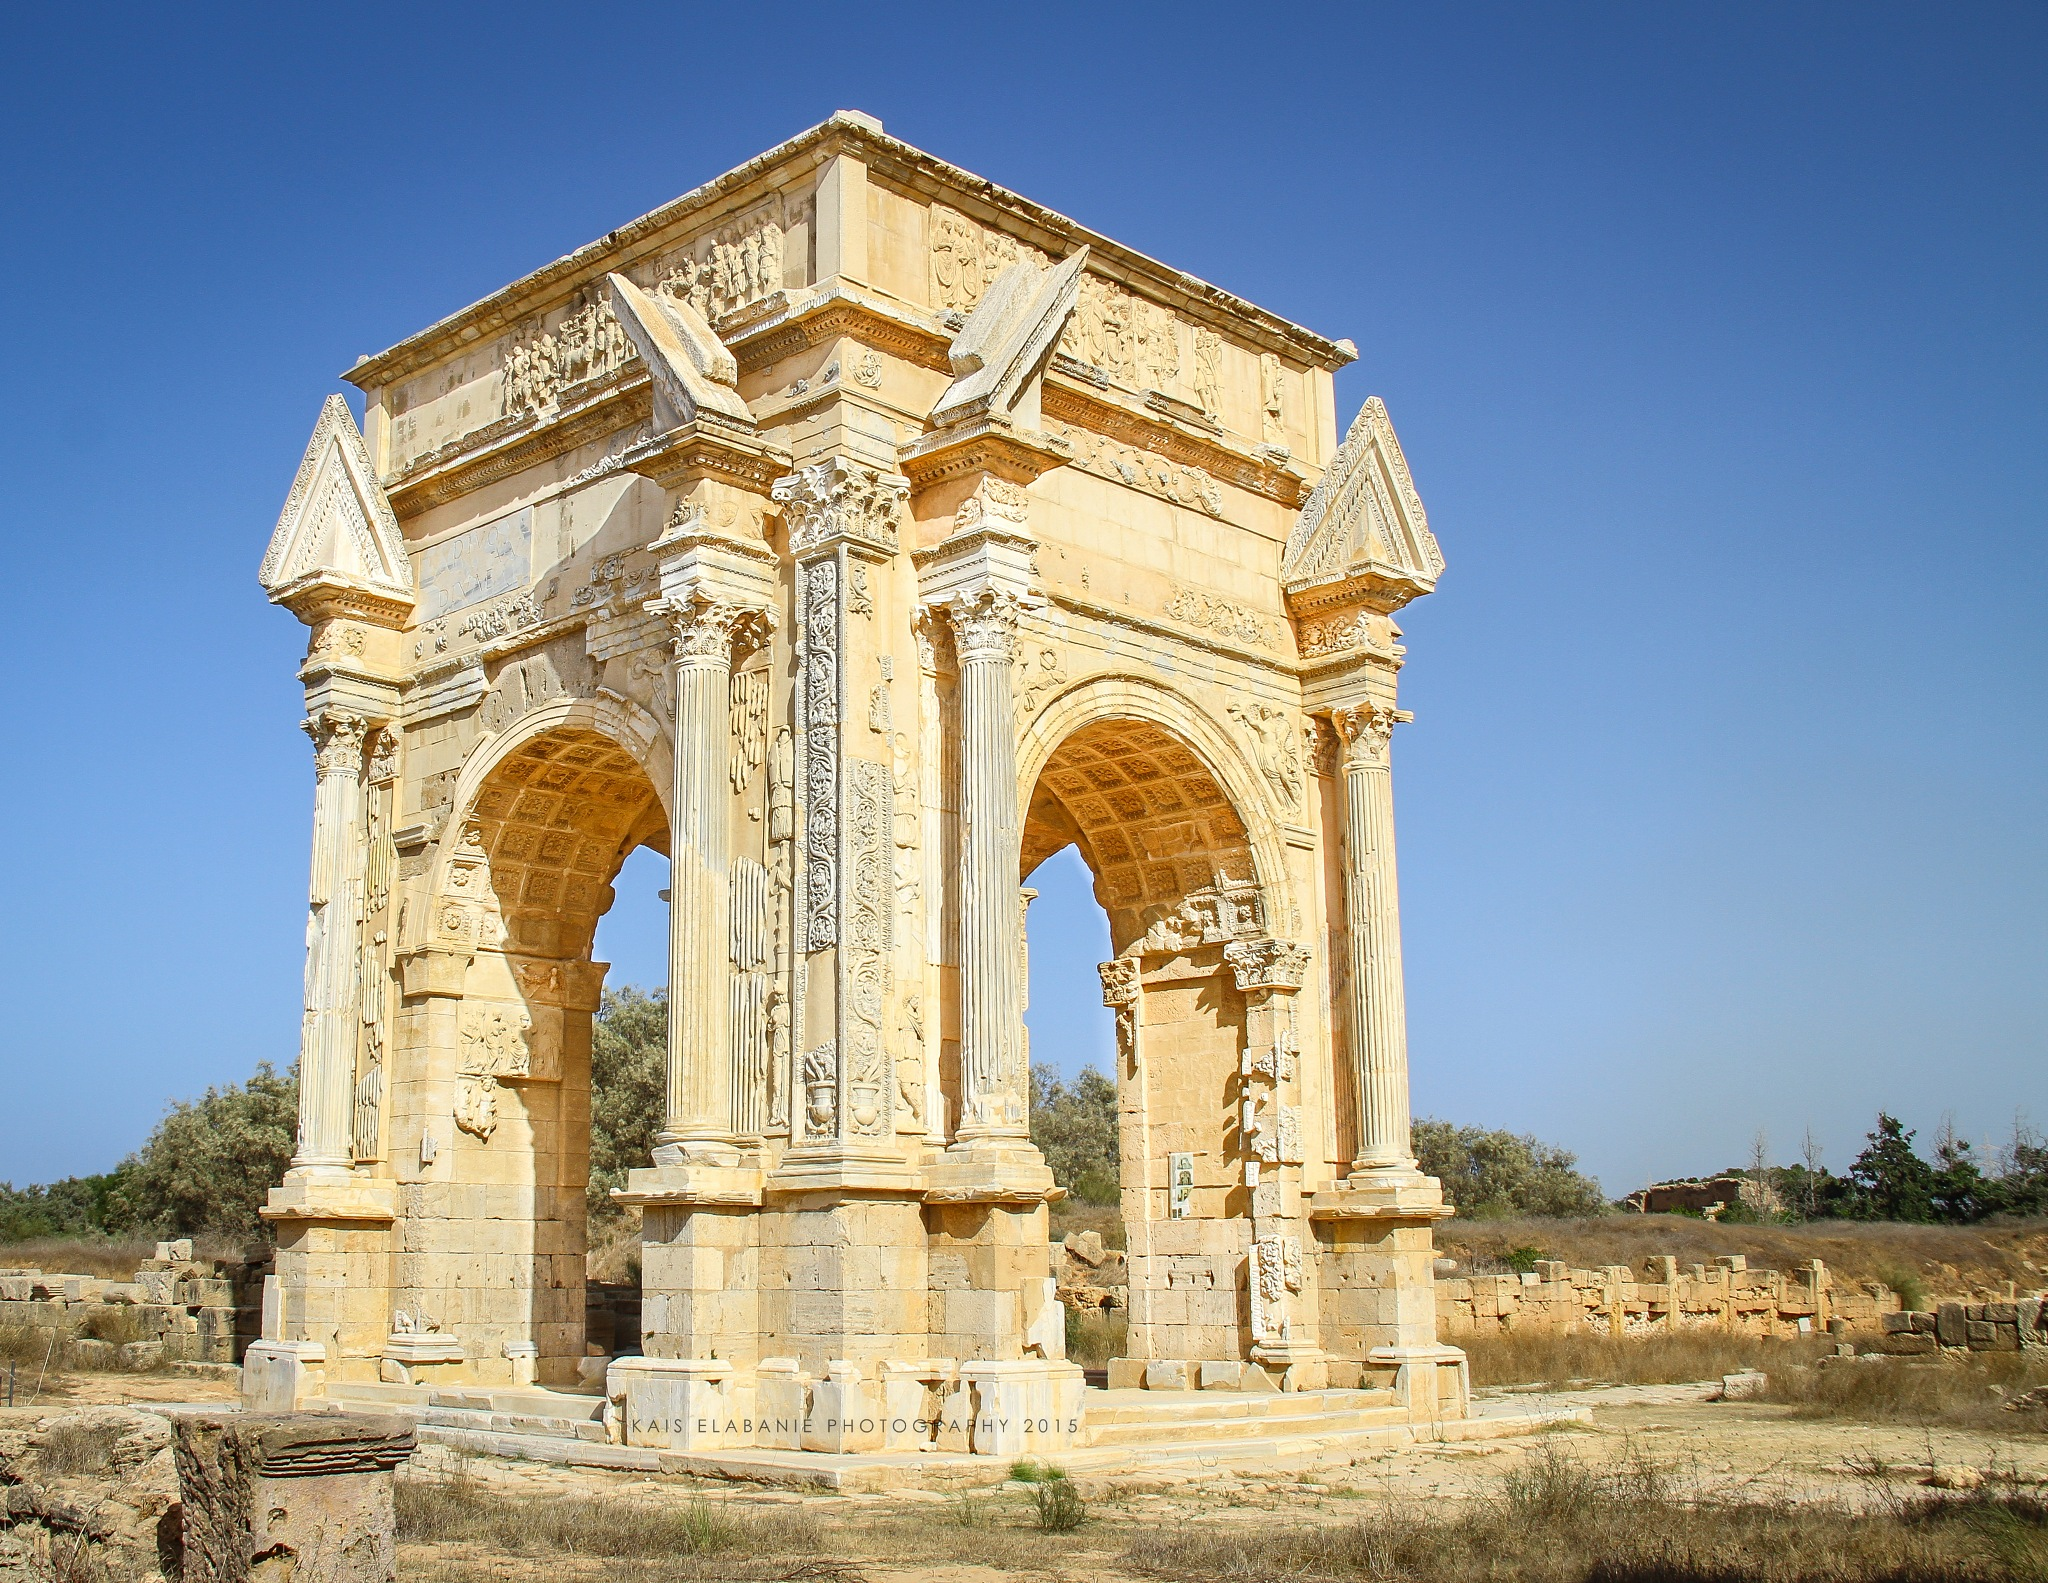 The Arch of Septimius Severus at Leptis Magna by Kais Elabanie